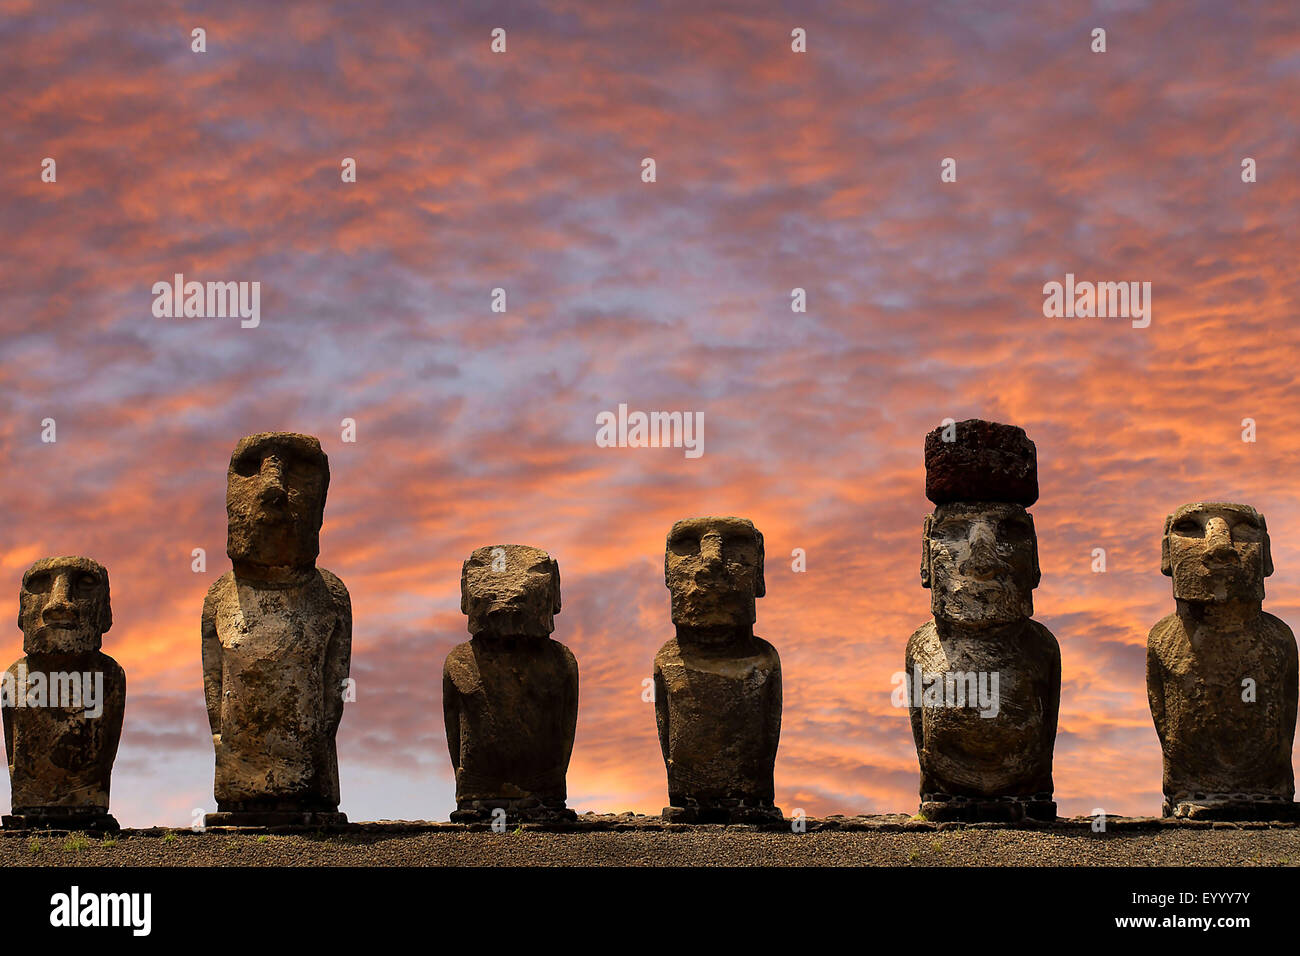 Moai statues at sunset, Chile, Rapa Nui National Park - Stock Image